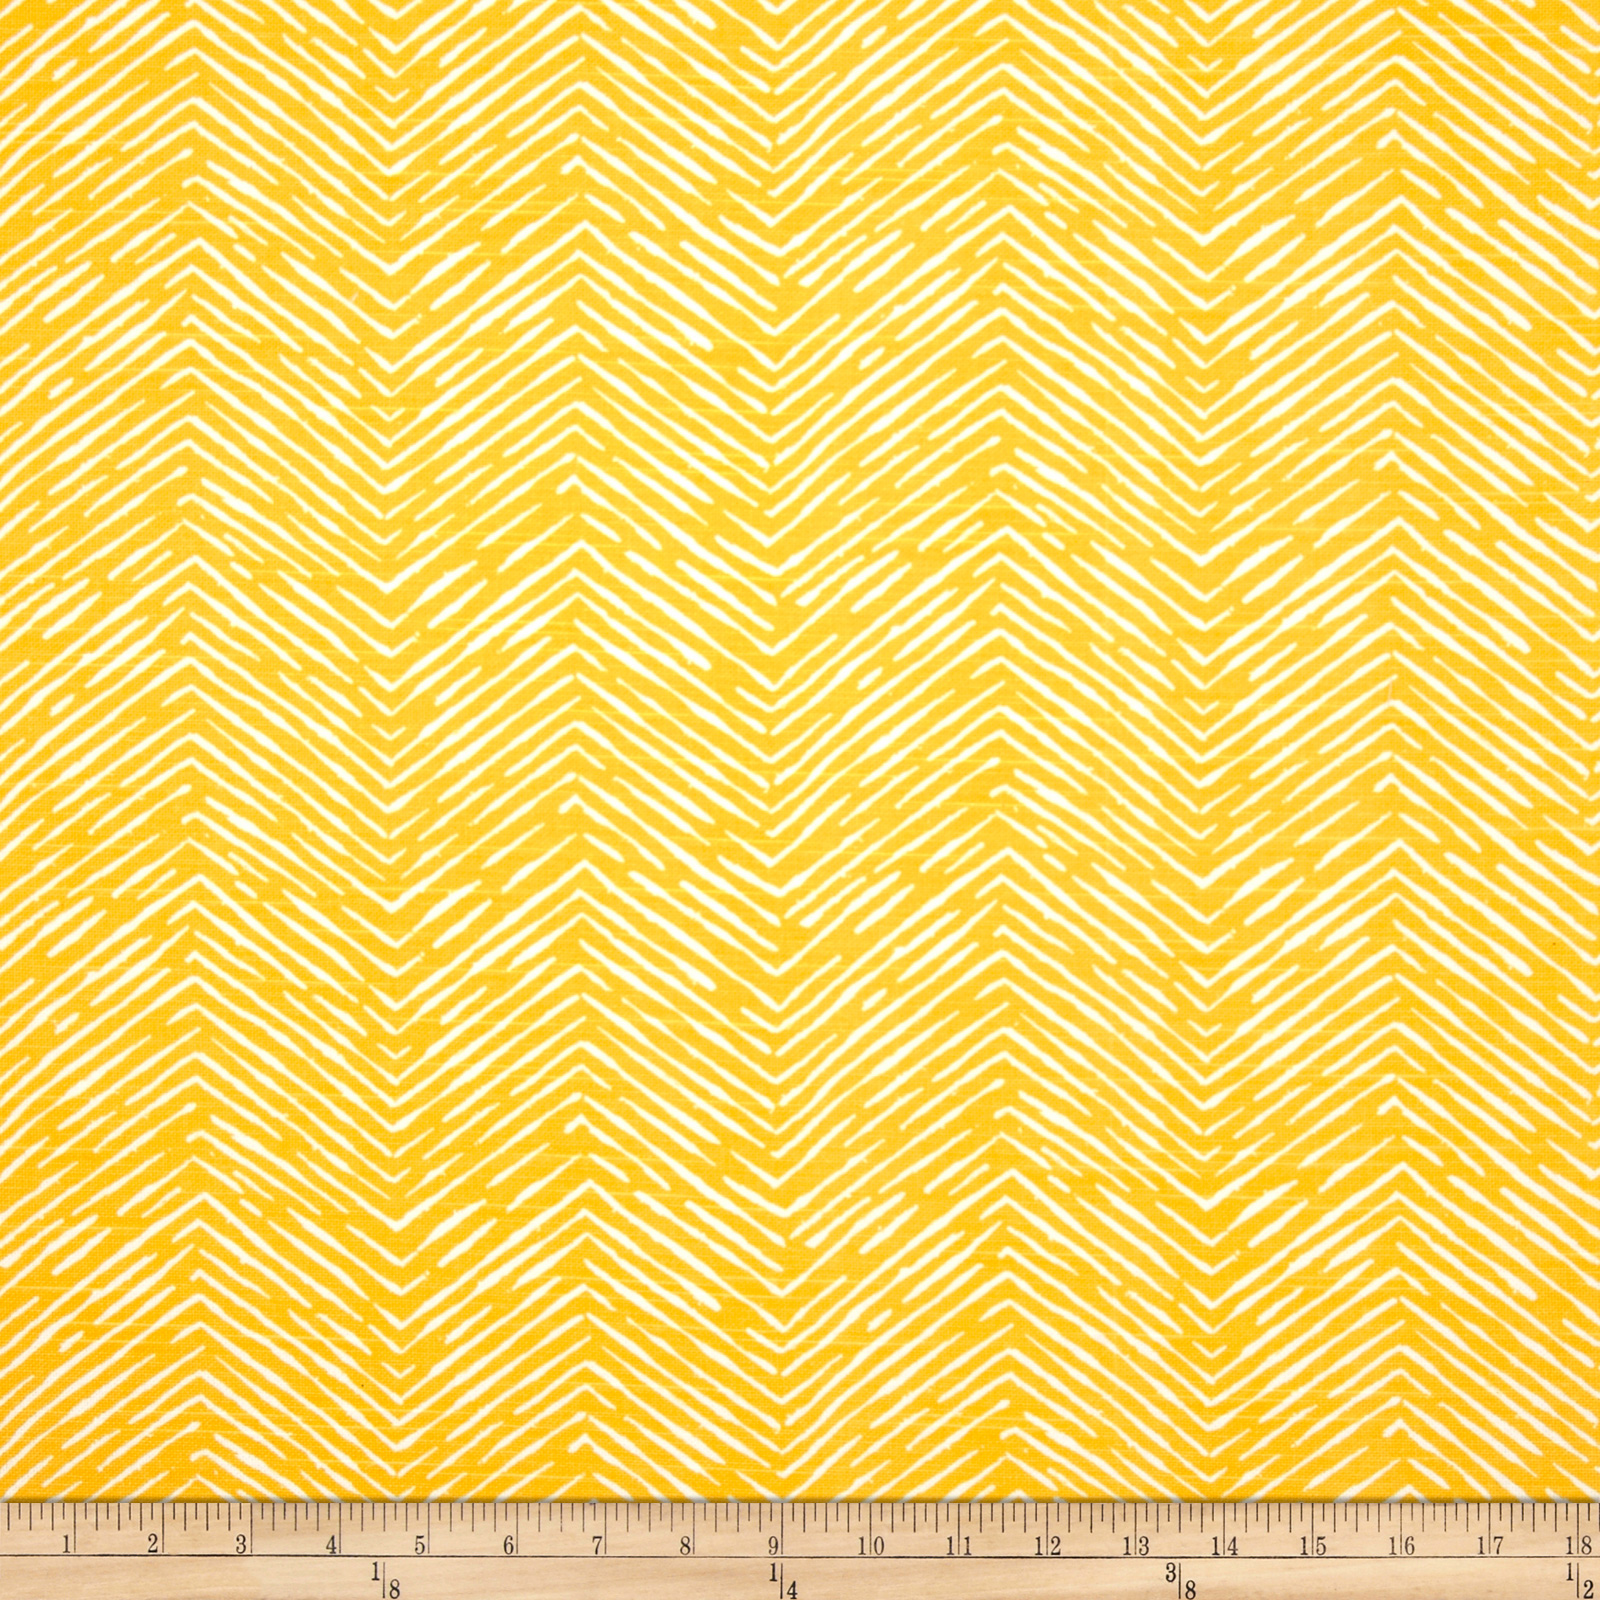 Premier Prints Cameron Slub Corn Yellow Fabric